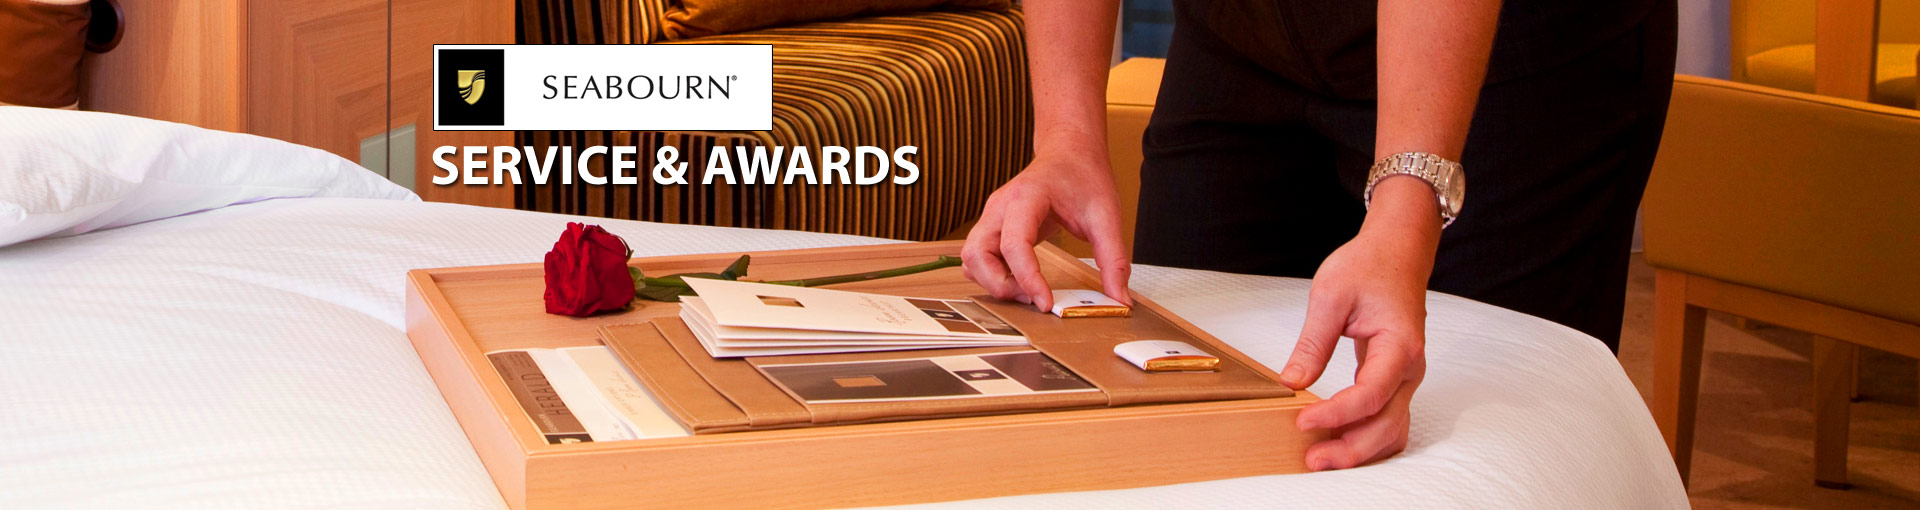 Seabourn Cruise Line Service & Awards